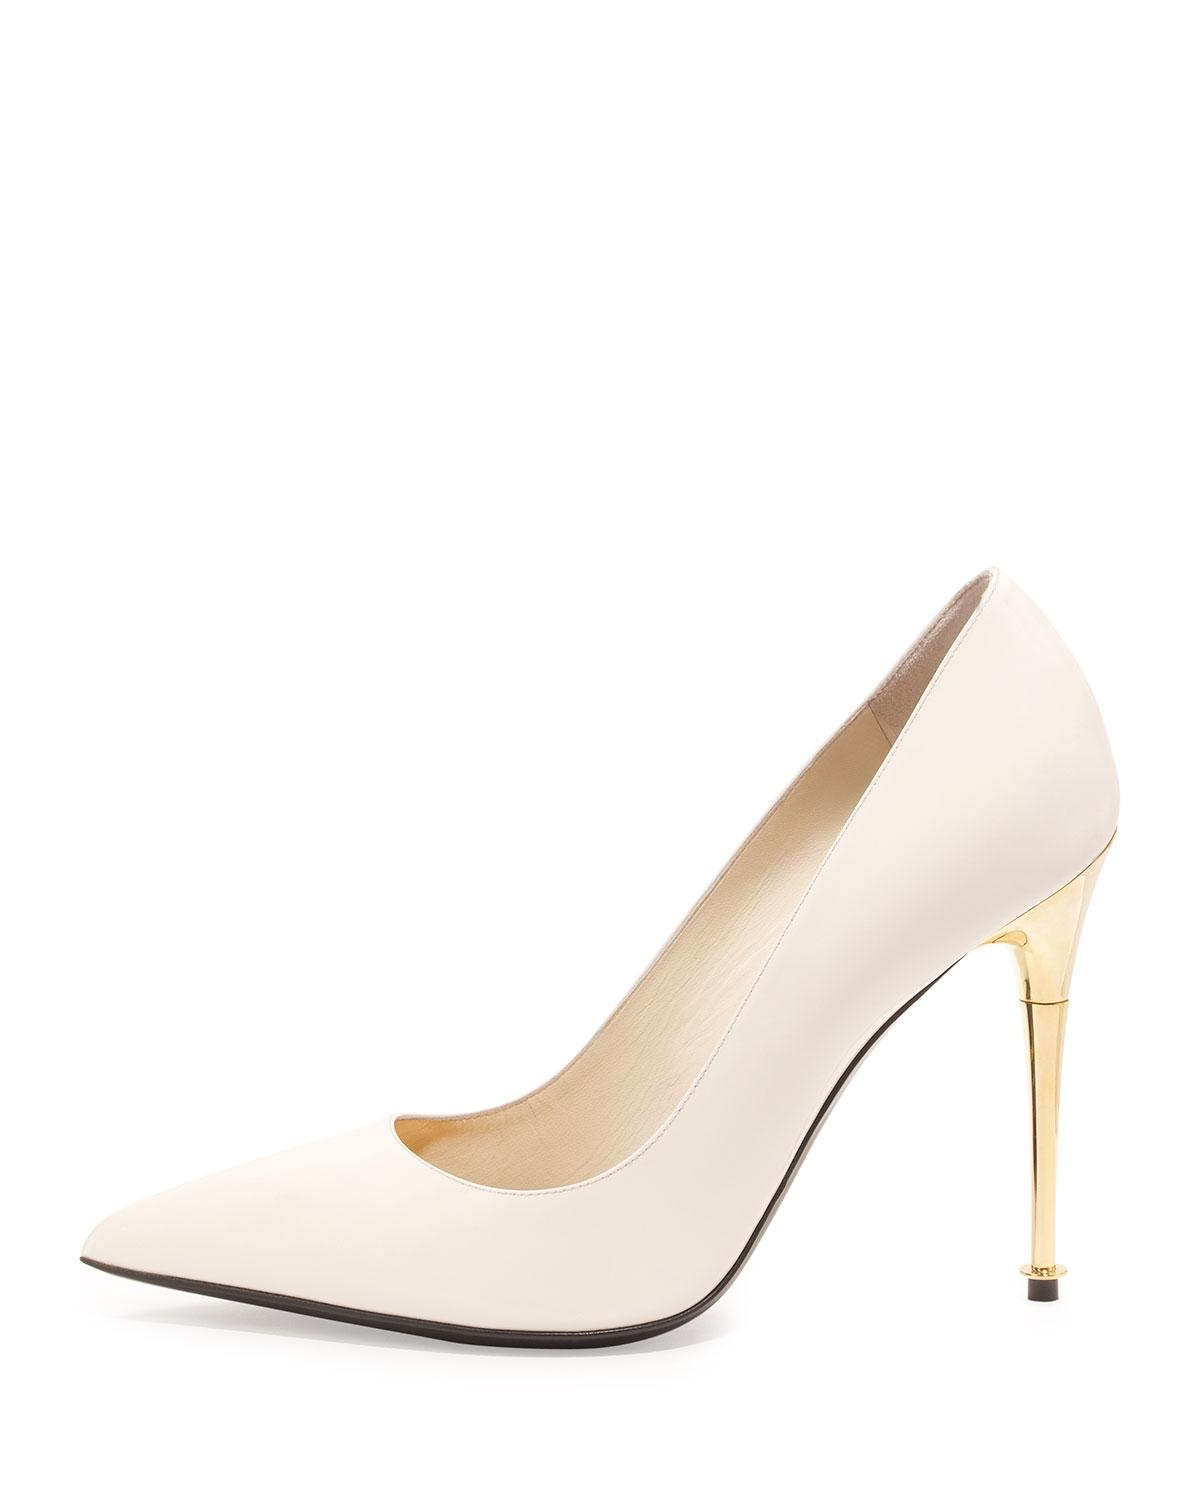 Tom Ford Leather Patent 105mm Pin heel Pump in Chalk (White